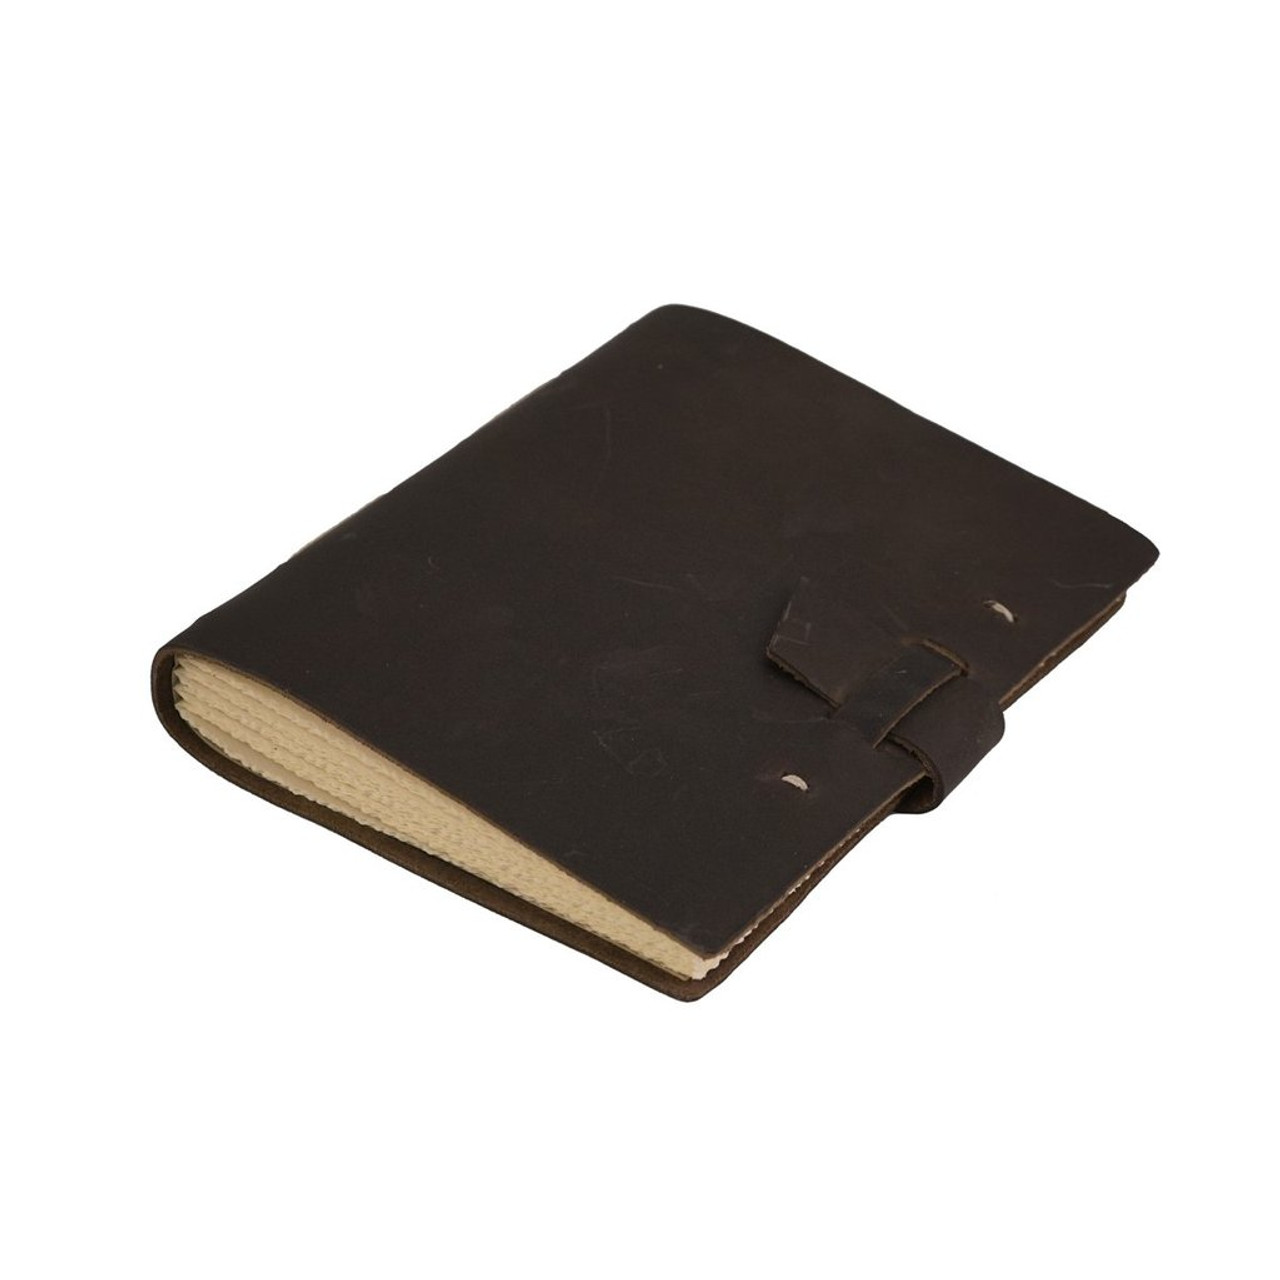 Rustico travelers journal with buckle - side view